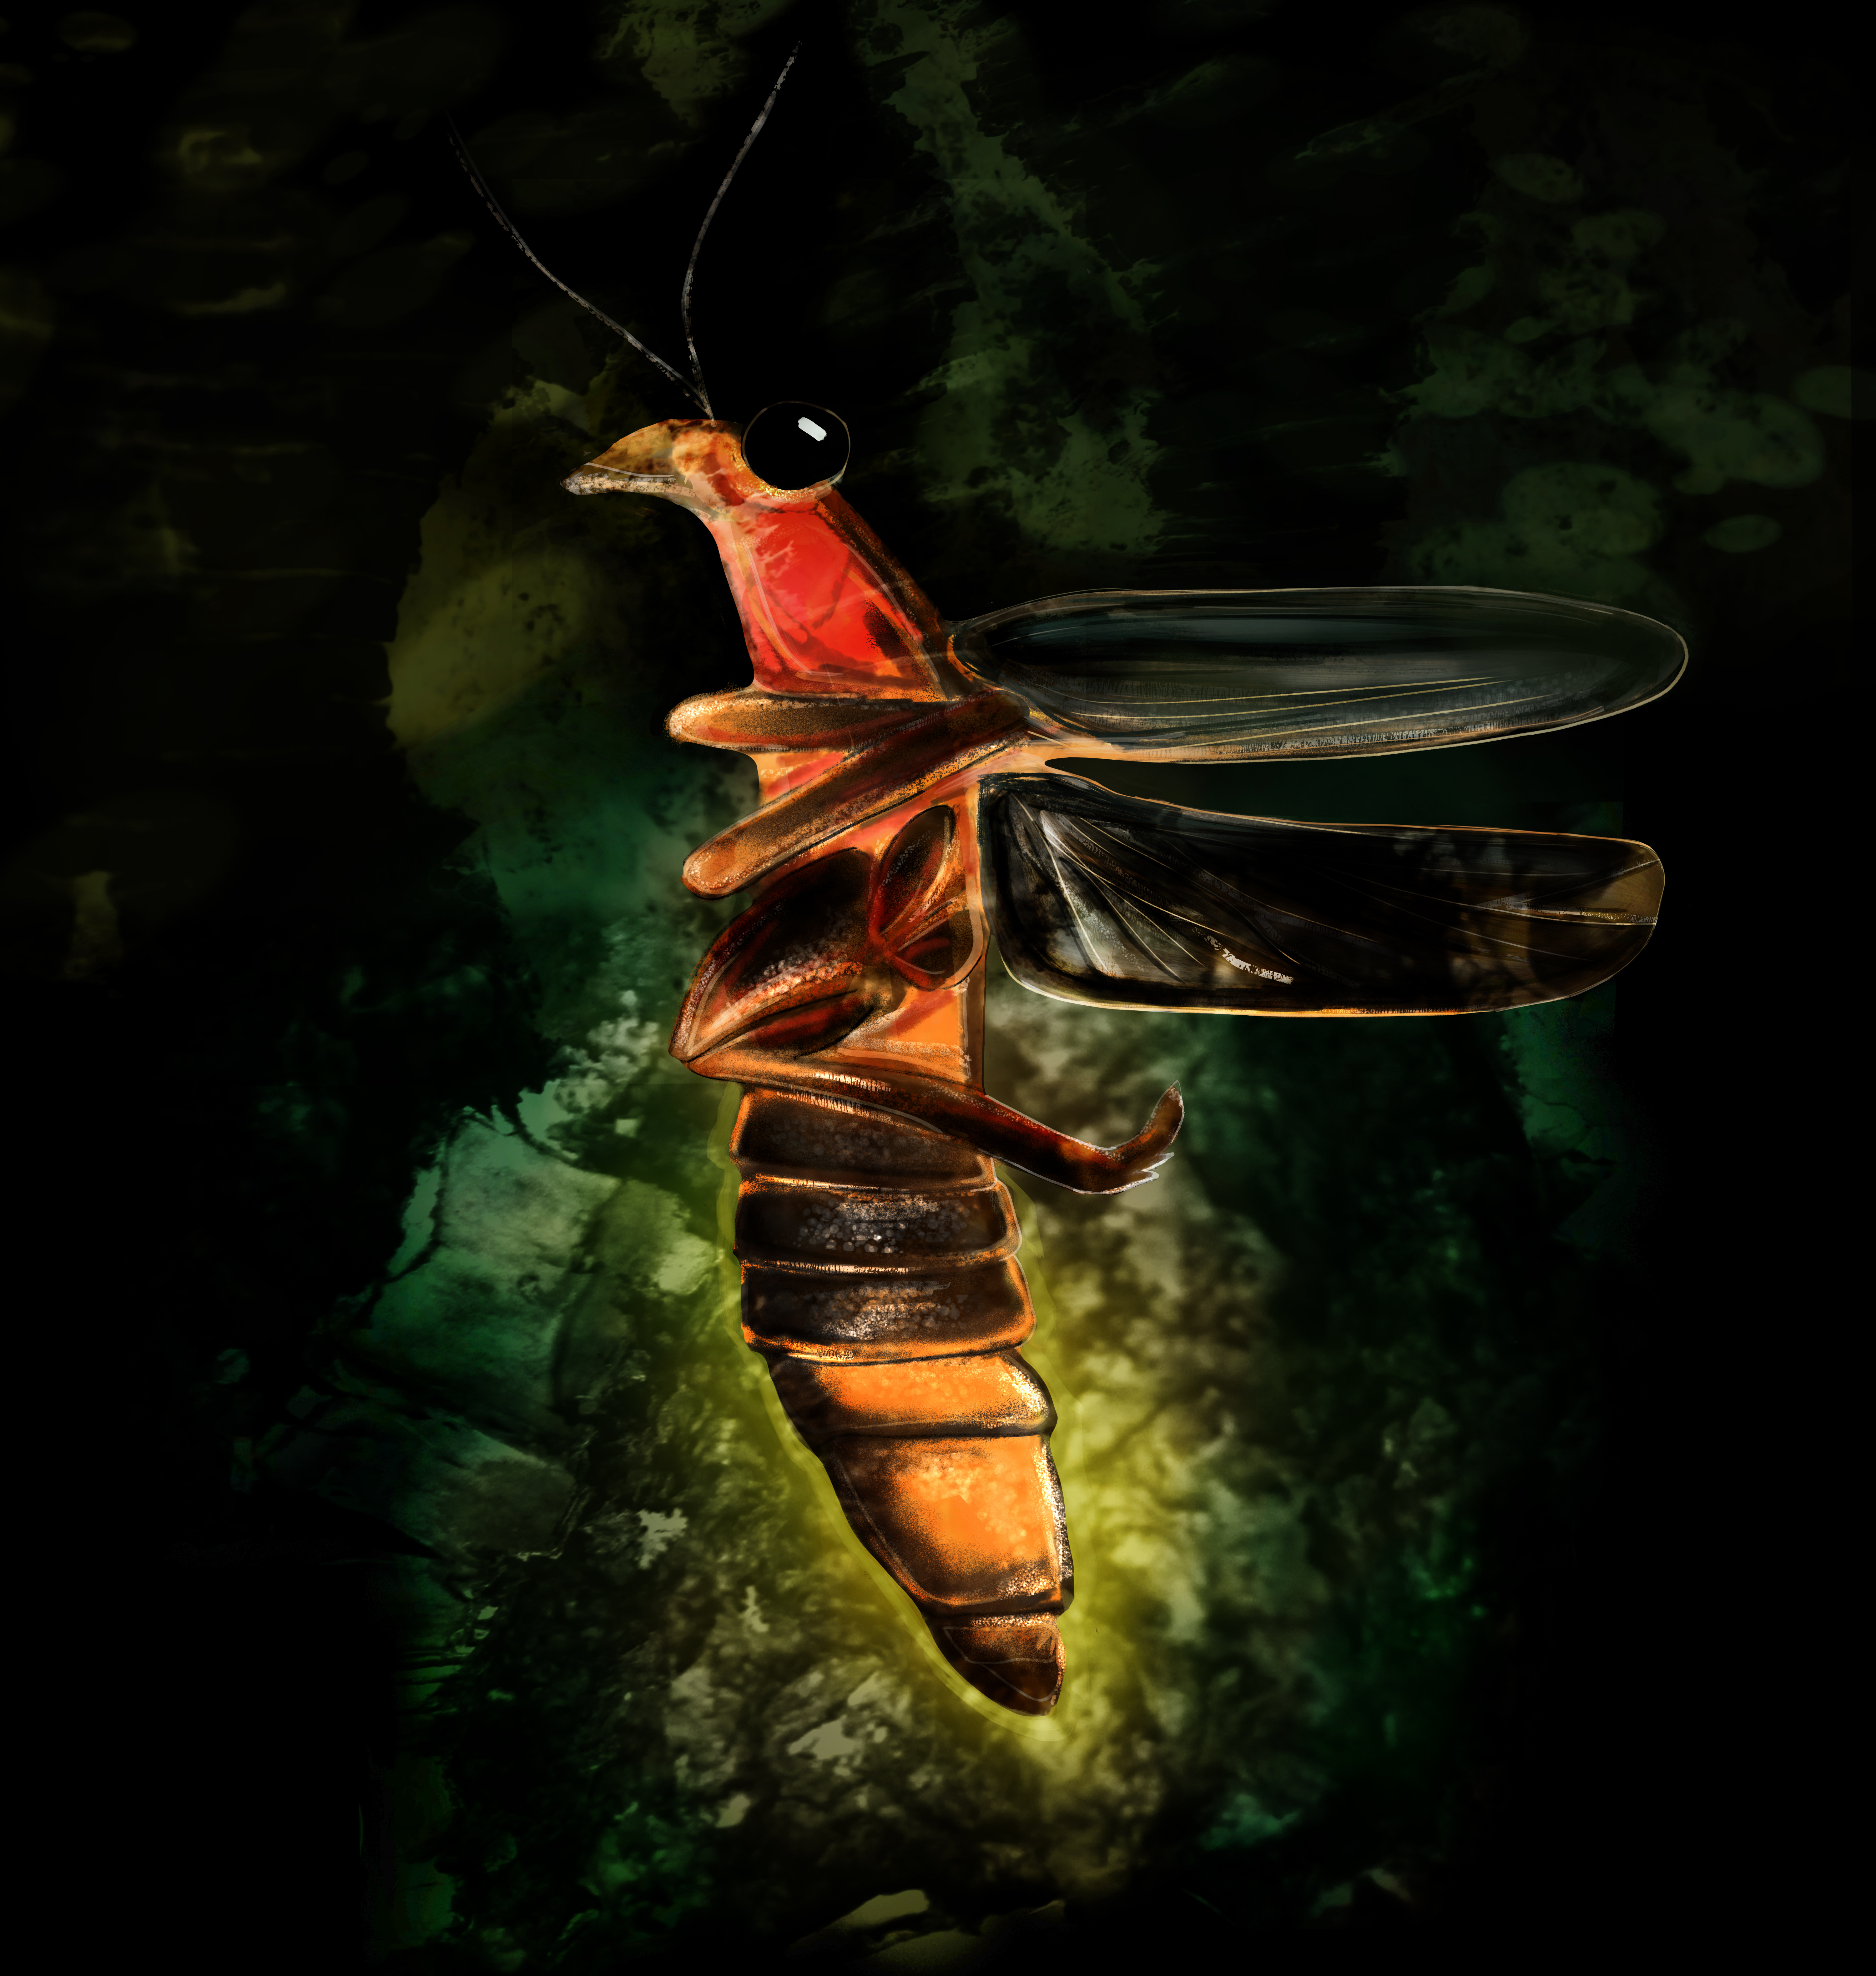 Firefly Illustration